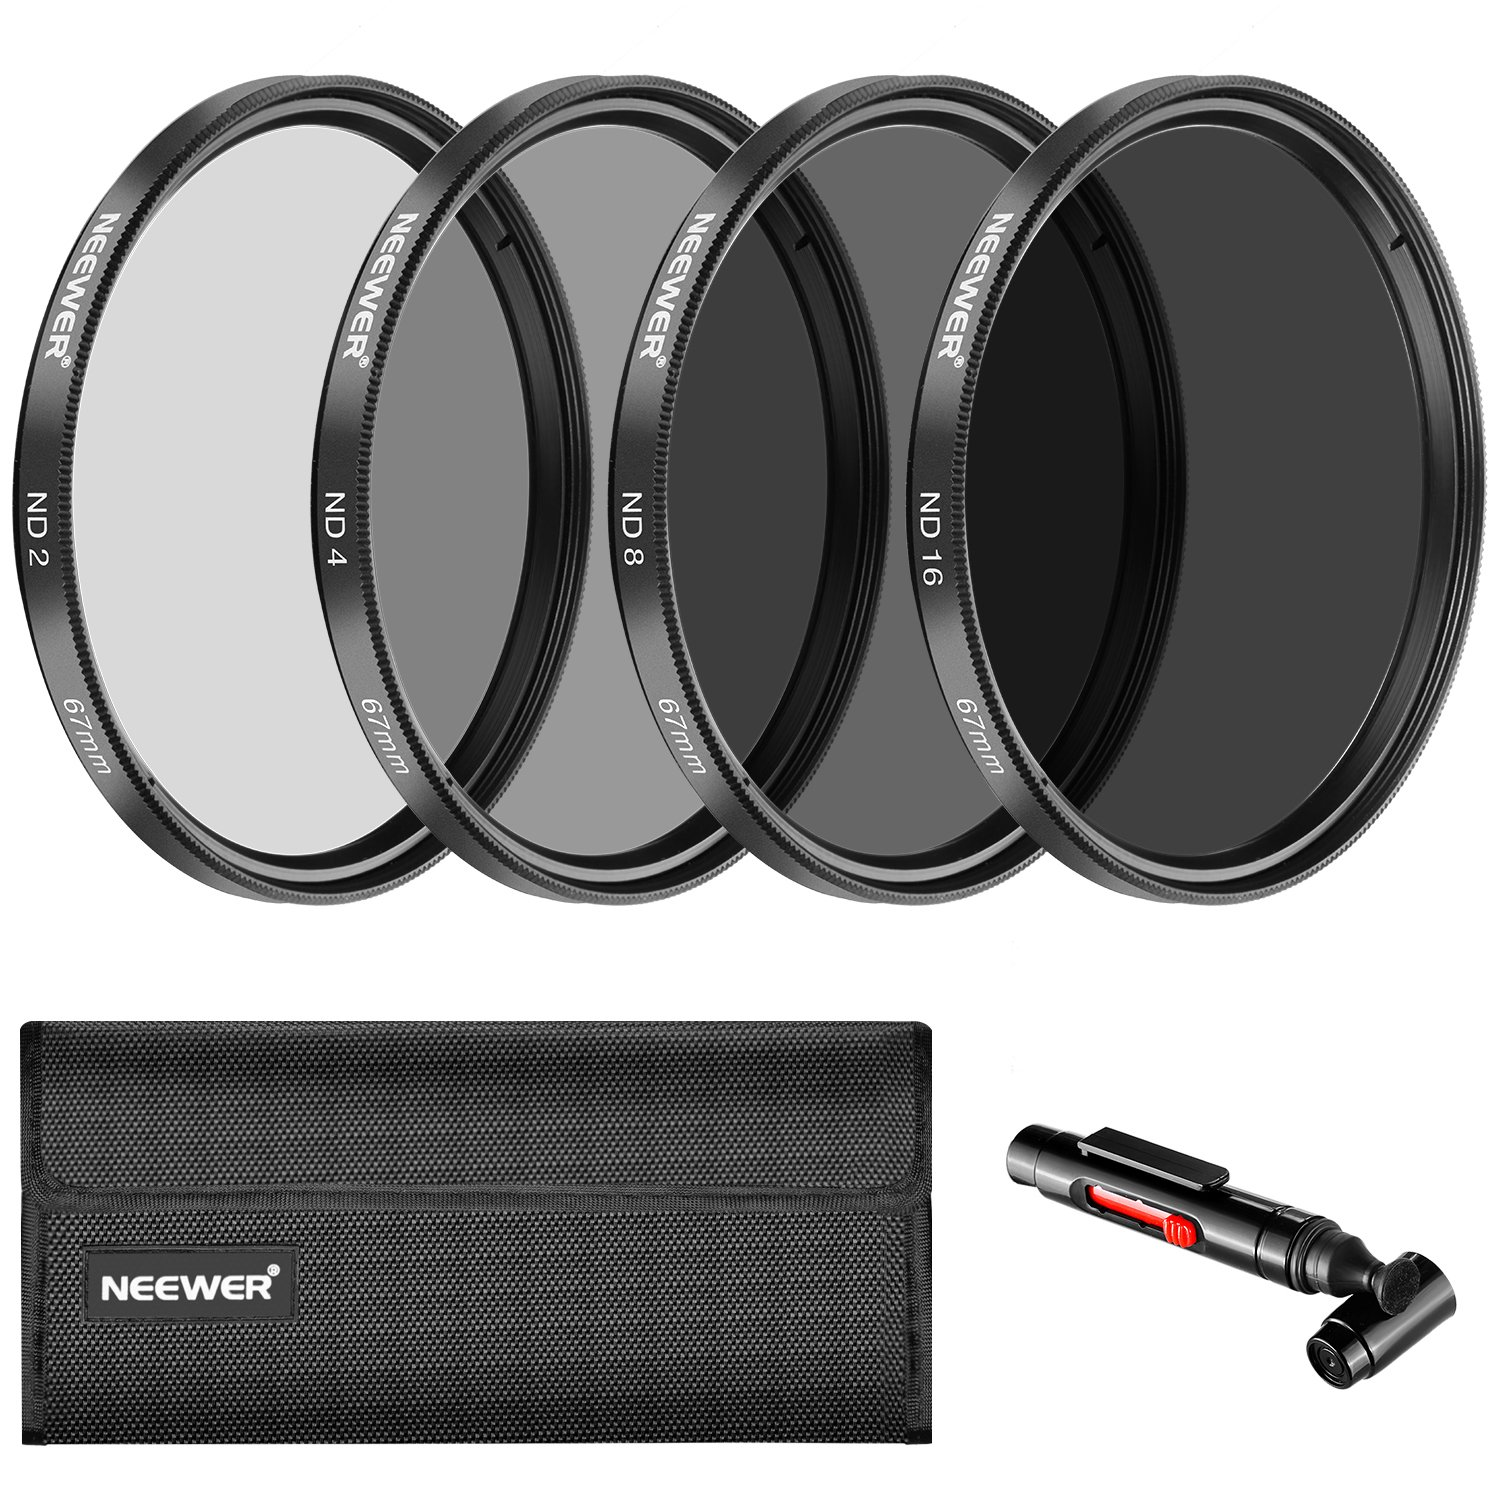 Neewer 67 mm Neutral Density Filter ND2 ND4 ND8 ND16 and Accessories Kit for Canon Rebel T5i T4i T3i T2i, EOS 700D 650D 600D 550D 70D 60D 7D DSLR, Lens Pen, Filter Bag